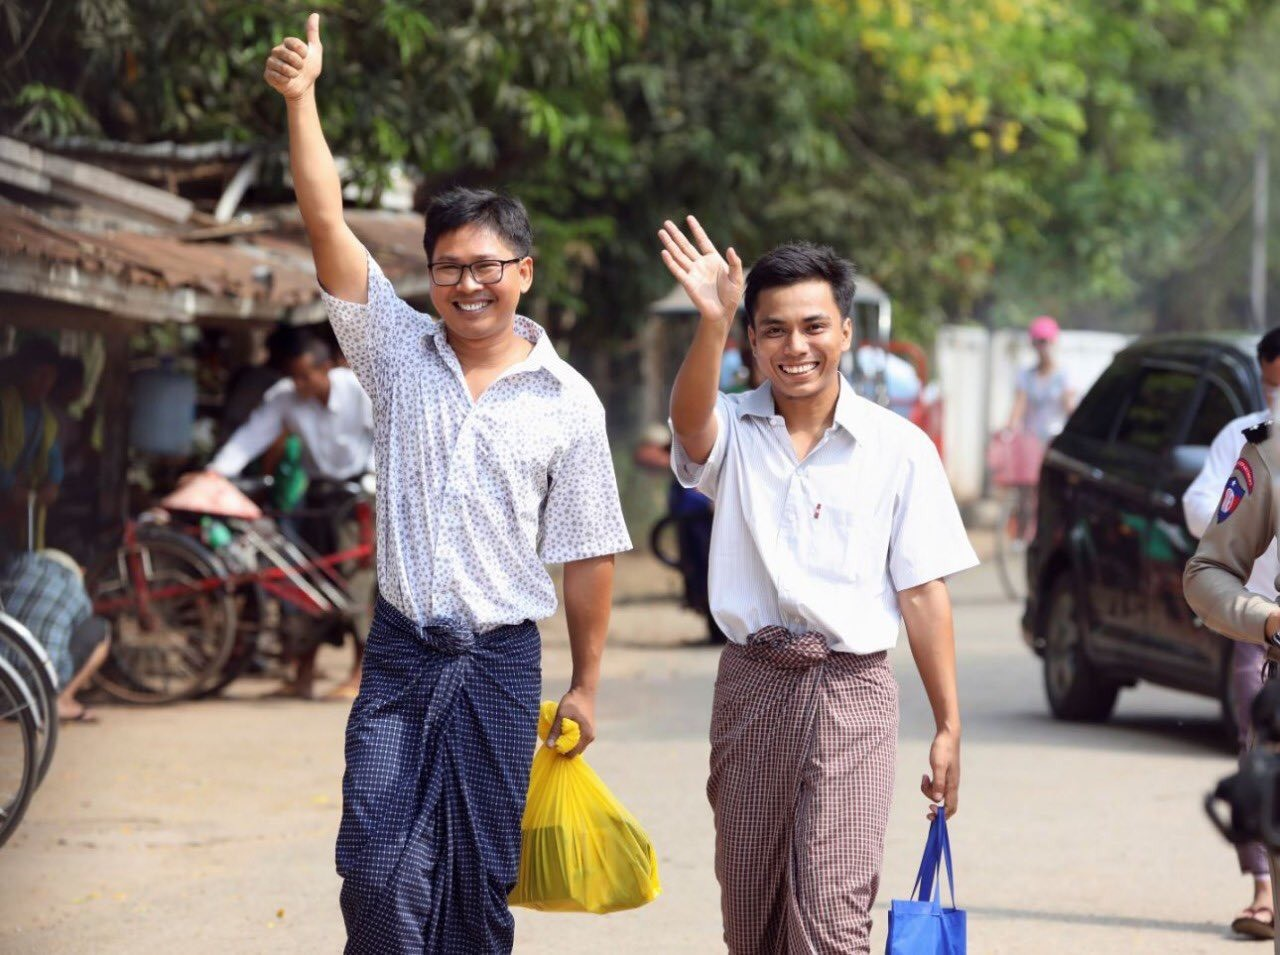 Good News: Journalists Wa Lone and Kyaw Soe have been released